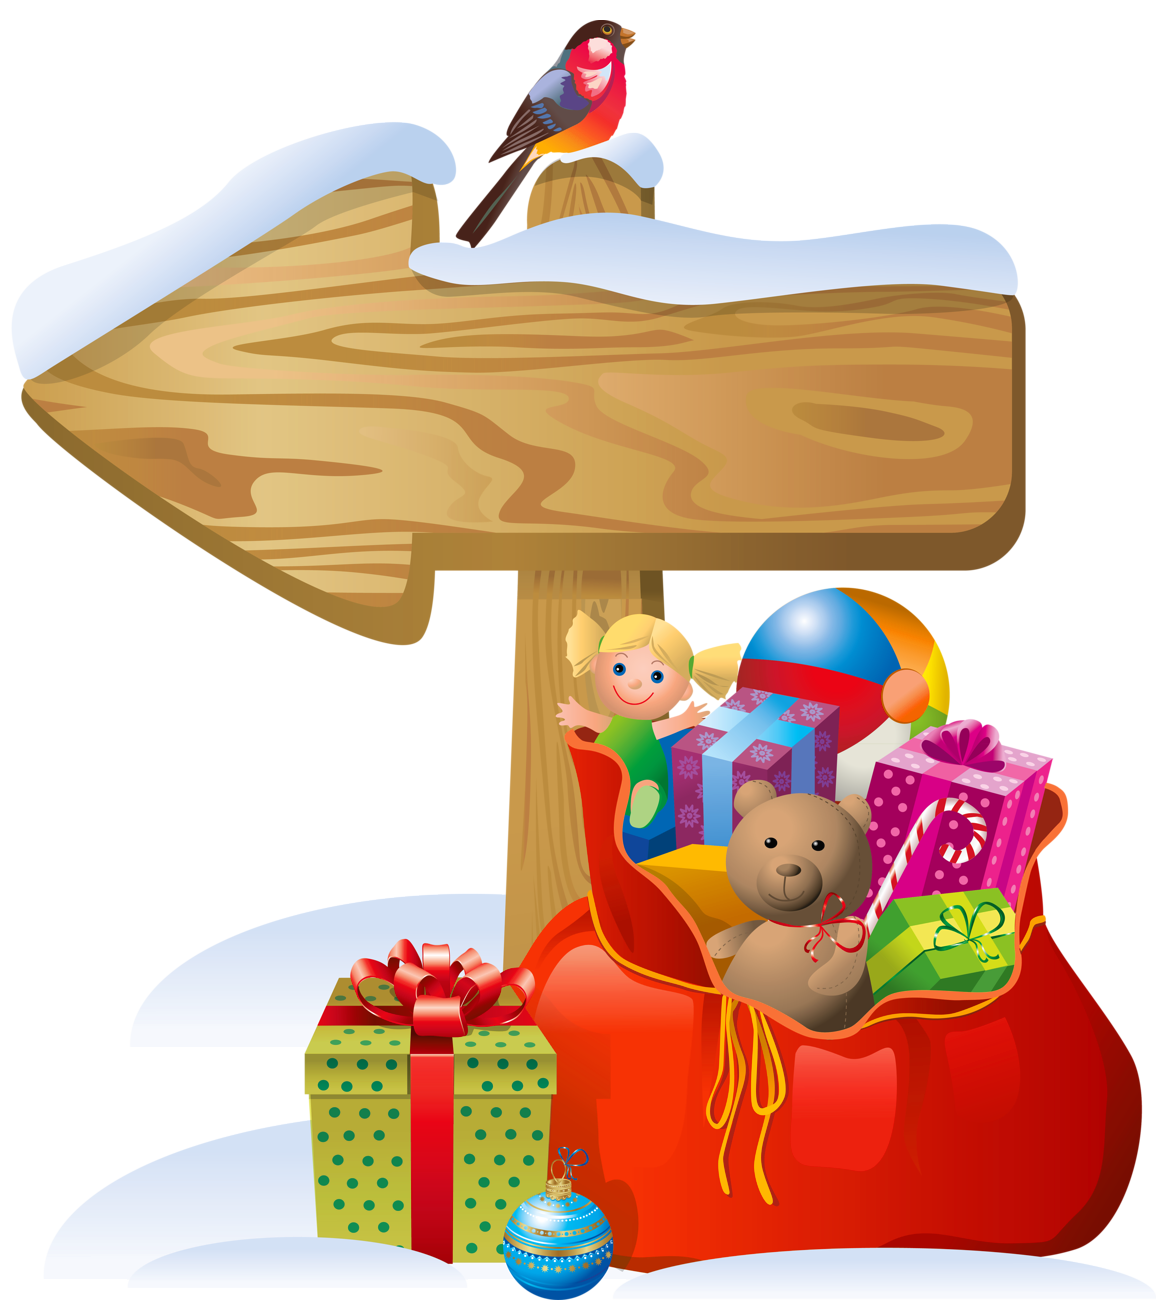 Transparent_Christmas_Sign_and_Santa_Bag_PNG_Clipart.png